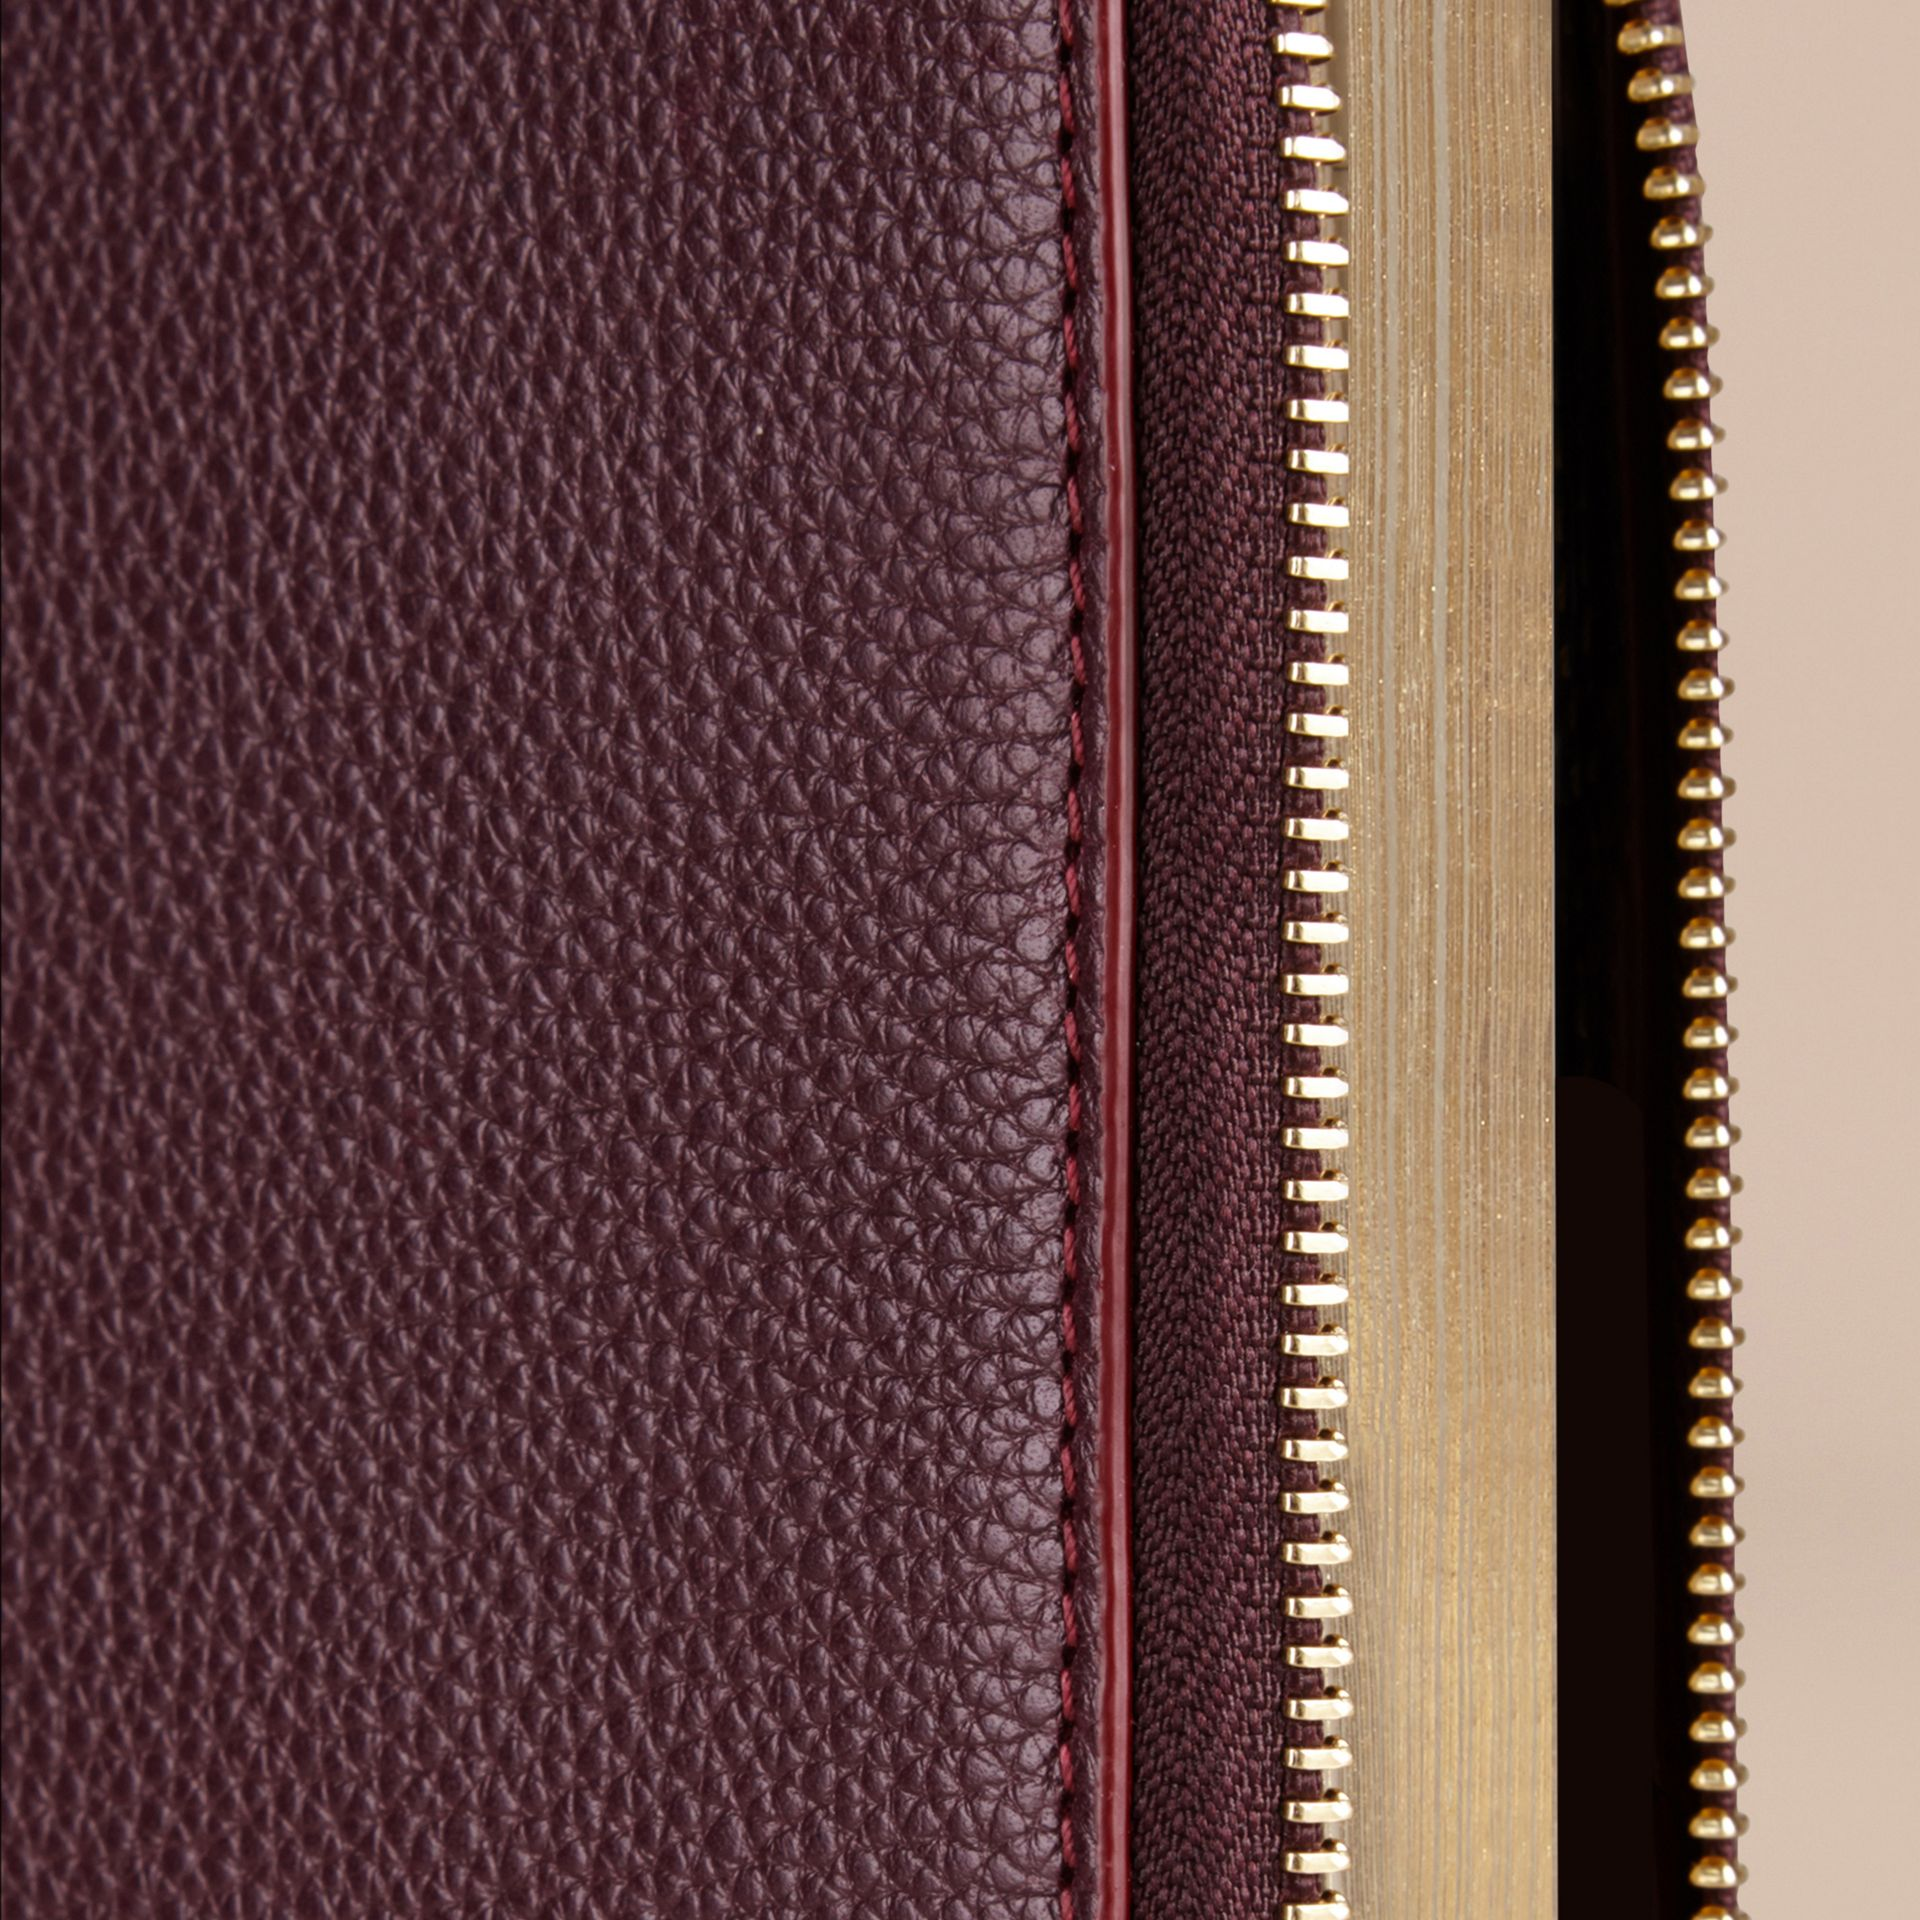 Ziparound Grainy Leather 18 Month 2016/17 A5 Diary in Dark Amethyst | Burberry - gallery image 2